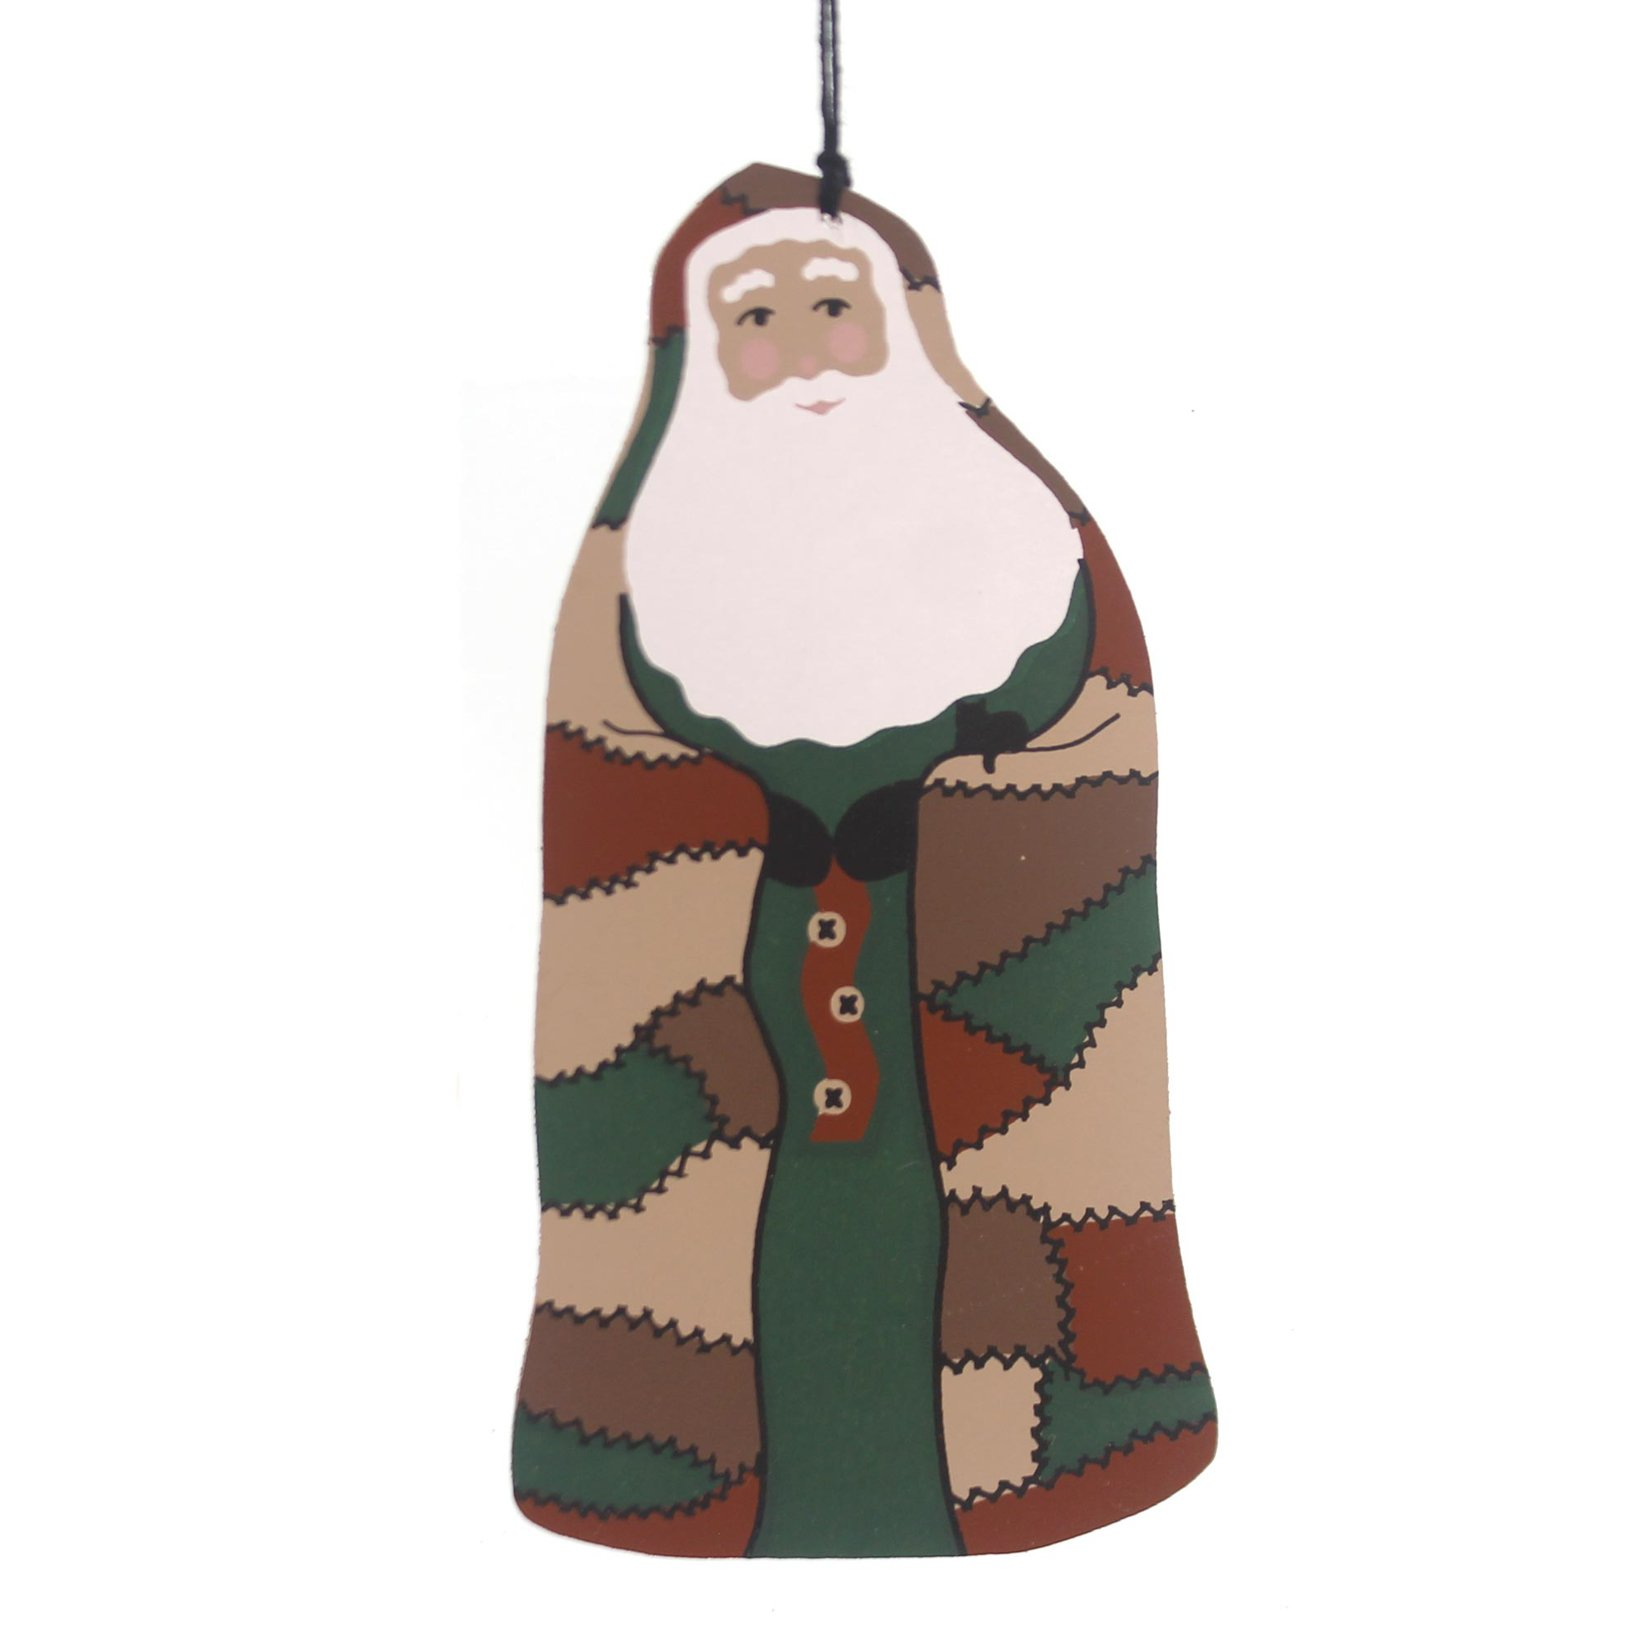 CATS MEOW VILLAGE Country Christmas Santa 1993 Ornament Special Commission 1993